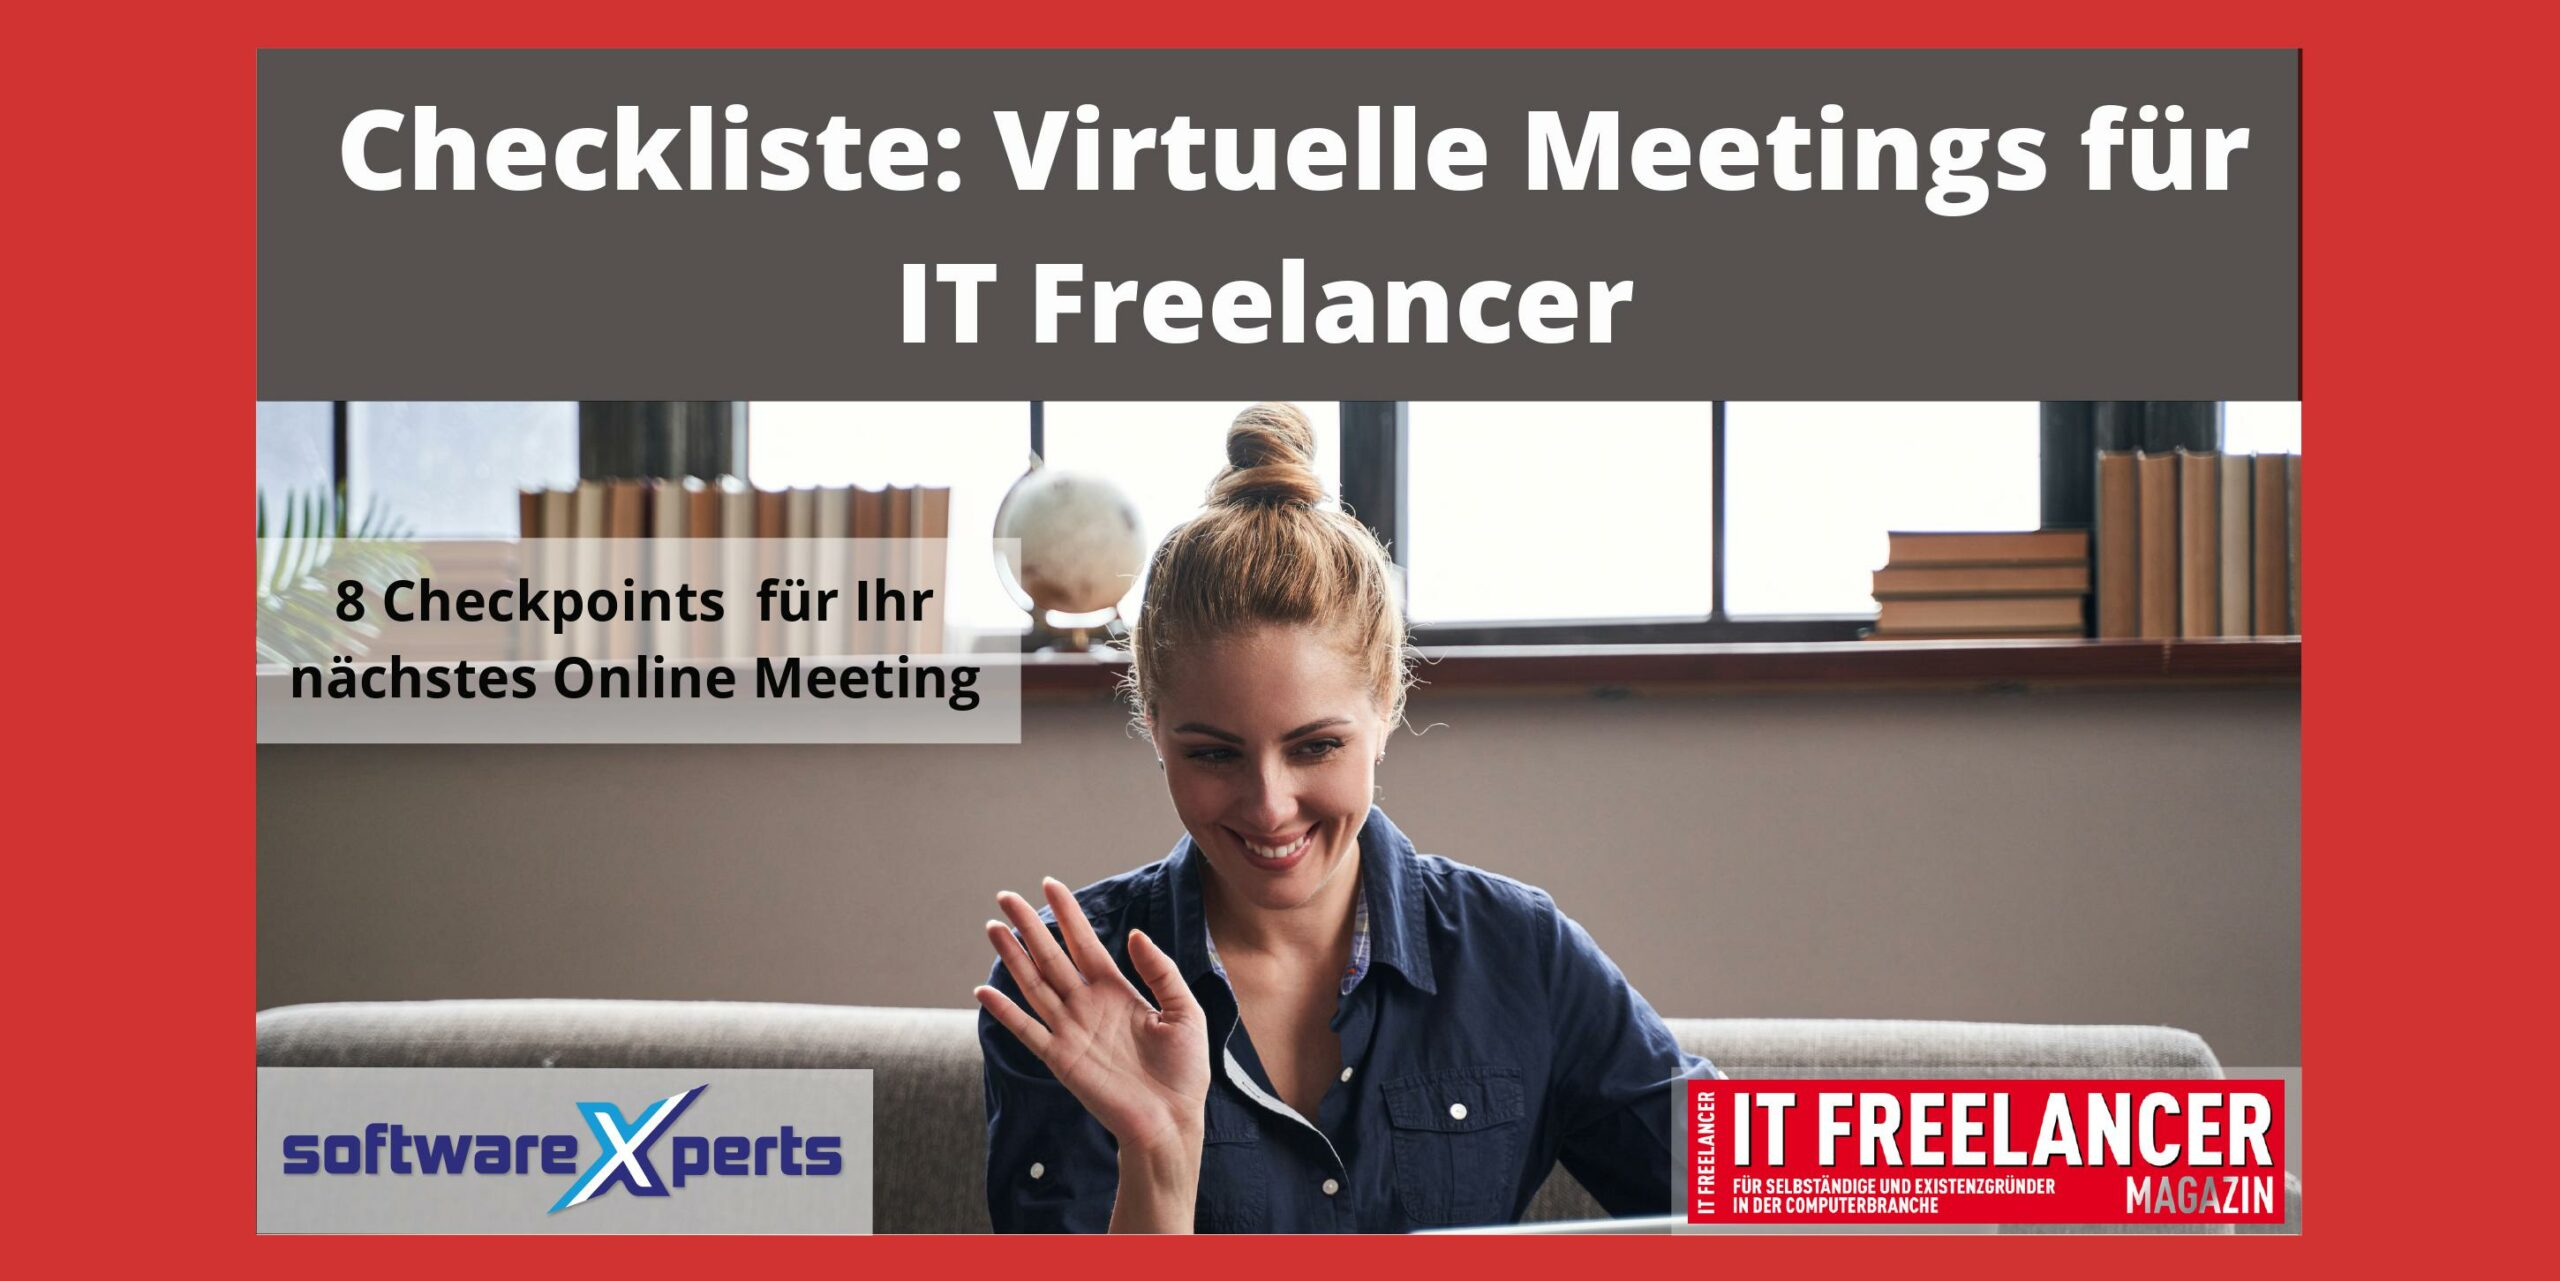 8 Tipps für virtuelle Meetings für IT Freelancer